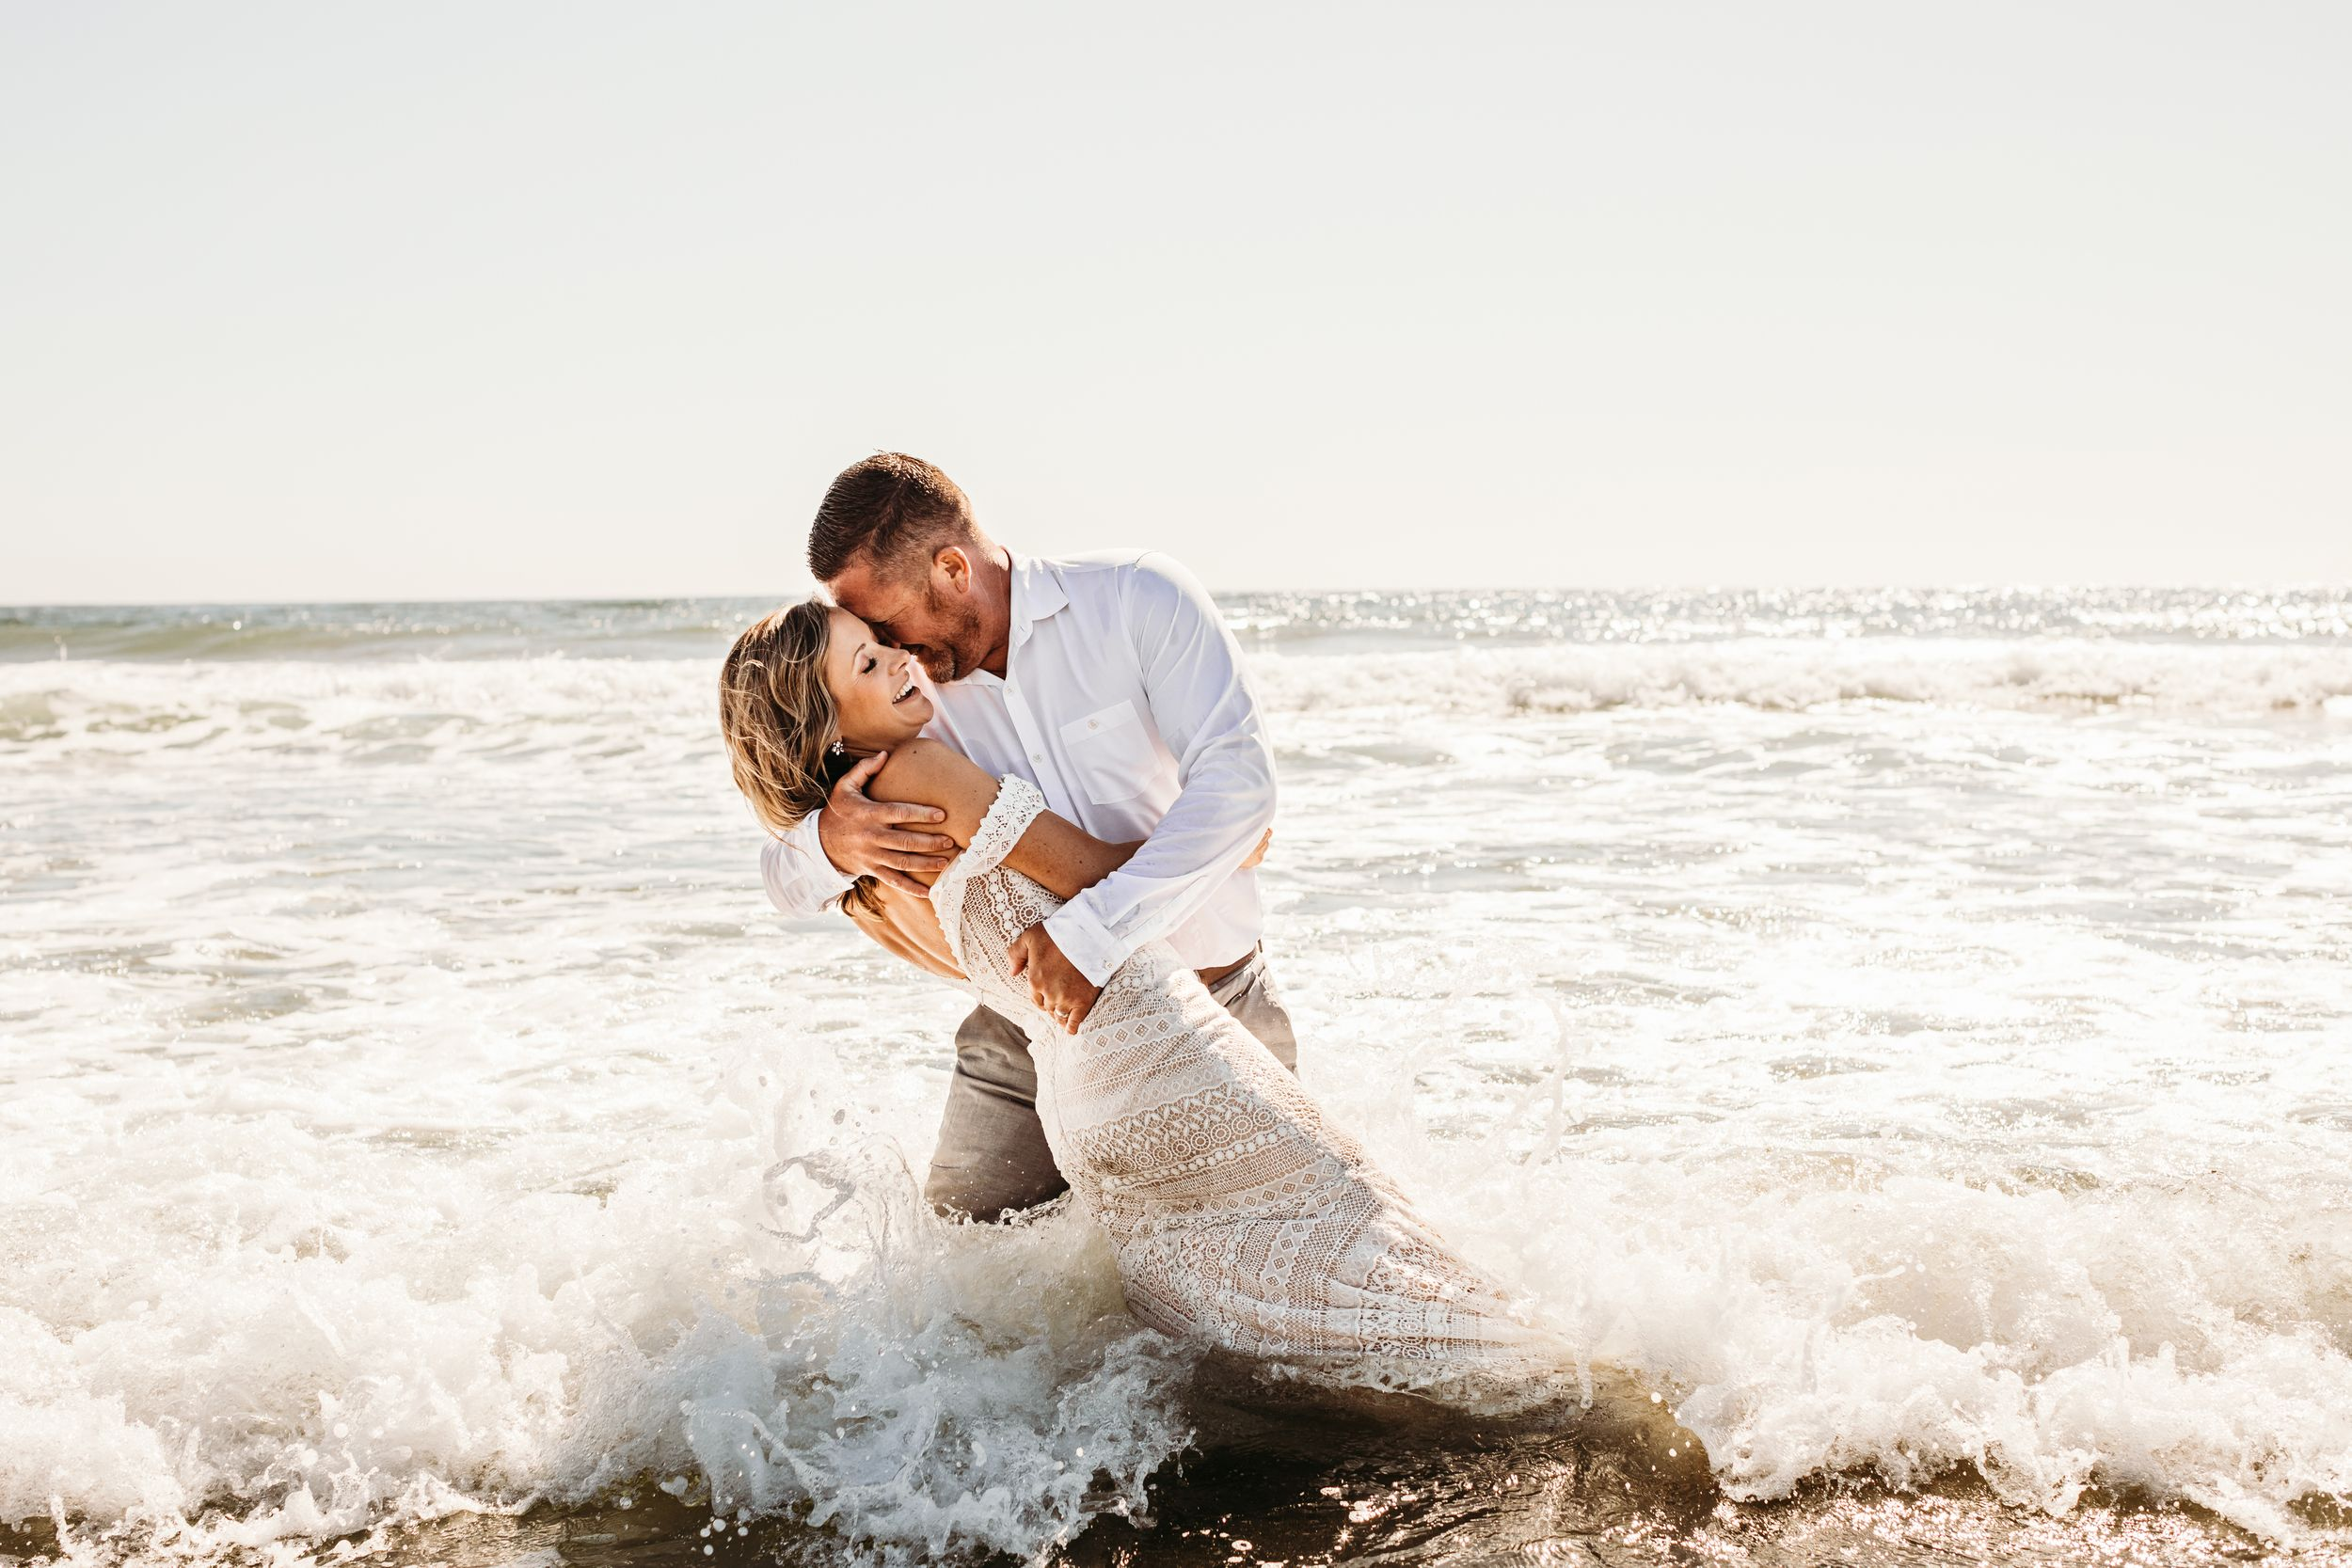 Central Coast, California elopement couple in the ocean waves.